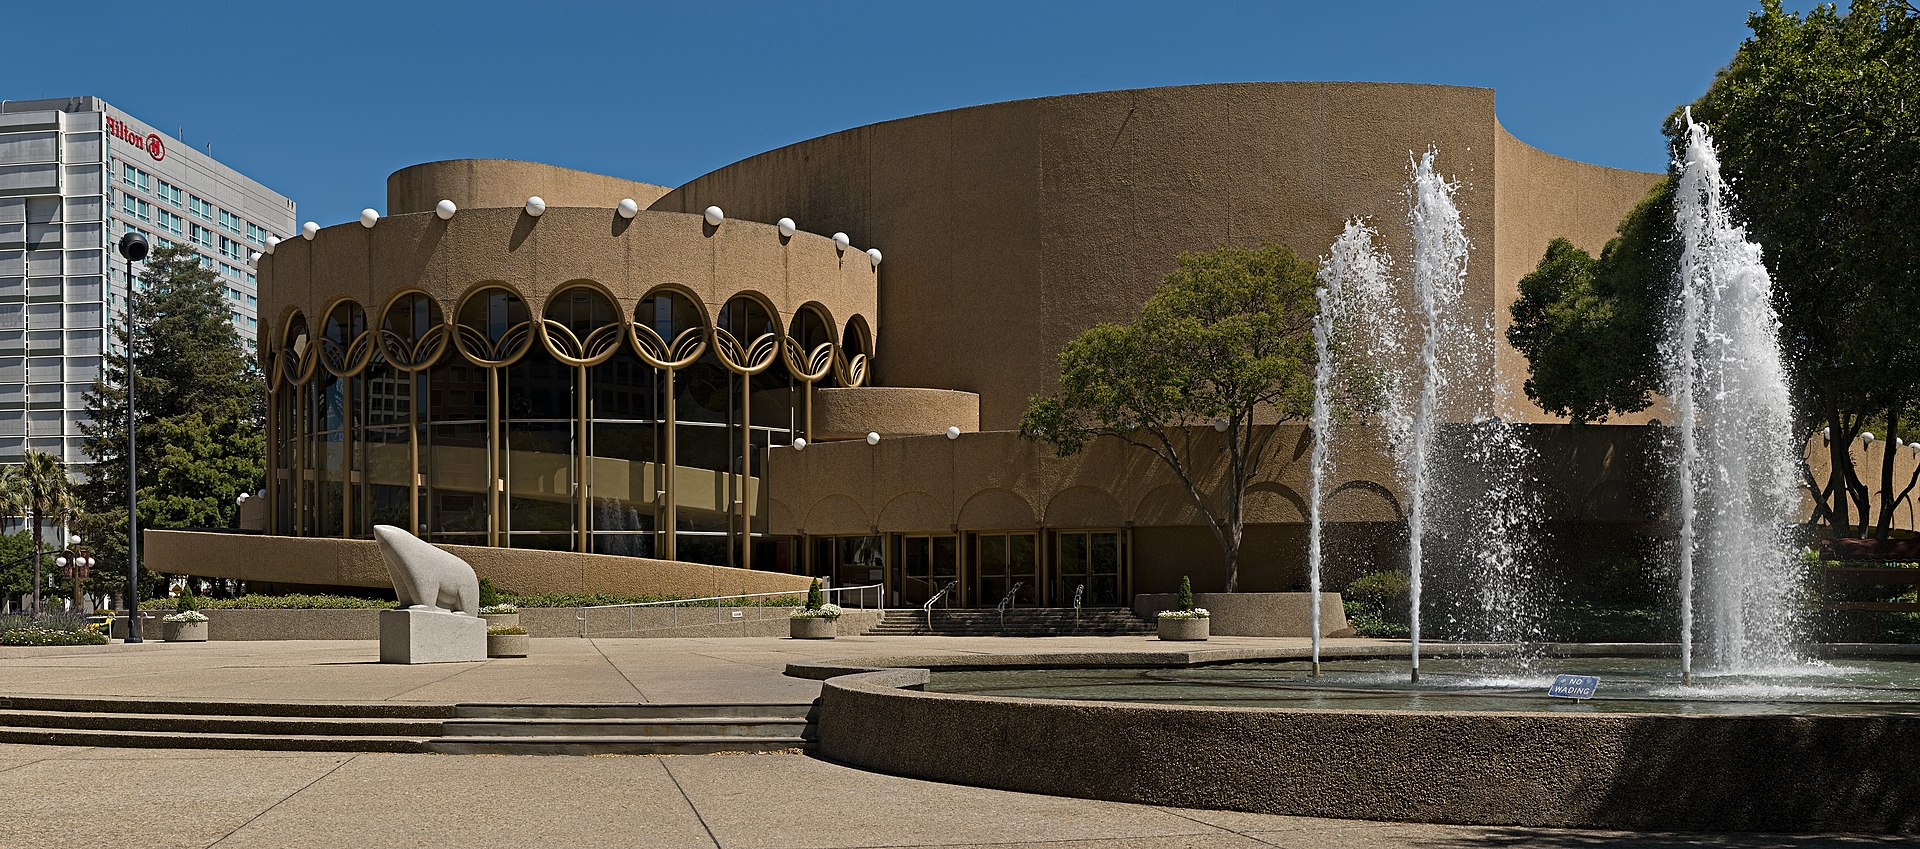 1920px-San_Jose_Center_for_Performing_Arts.jpg